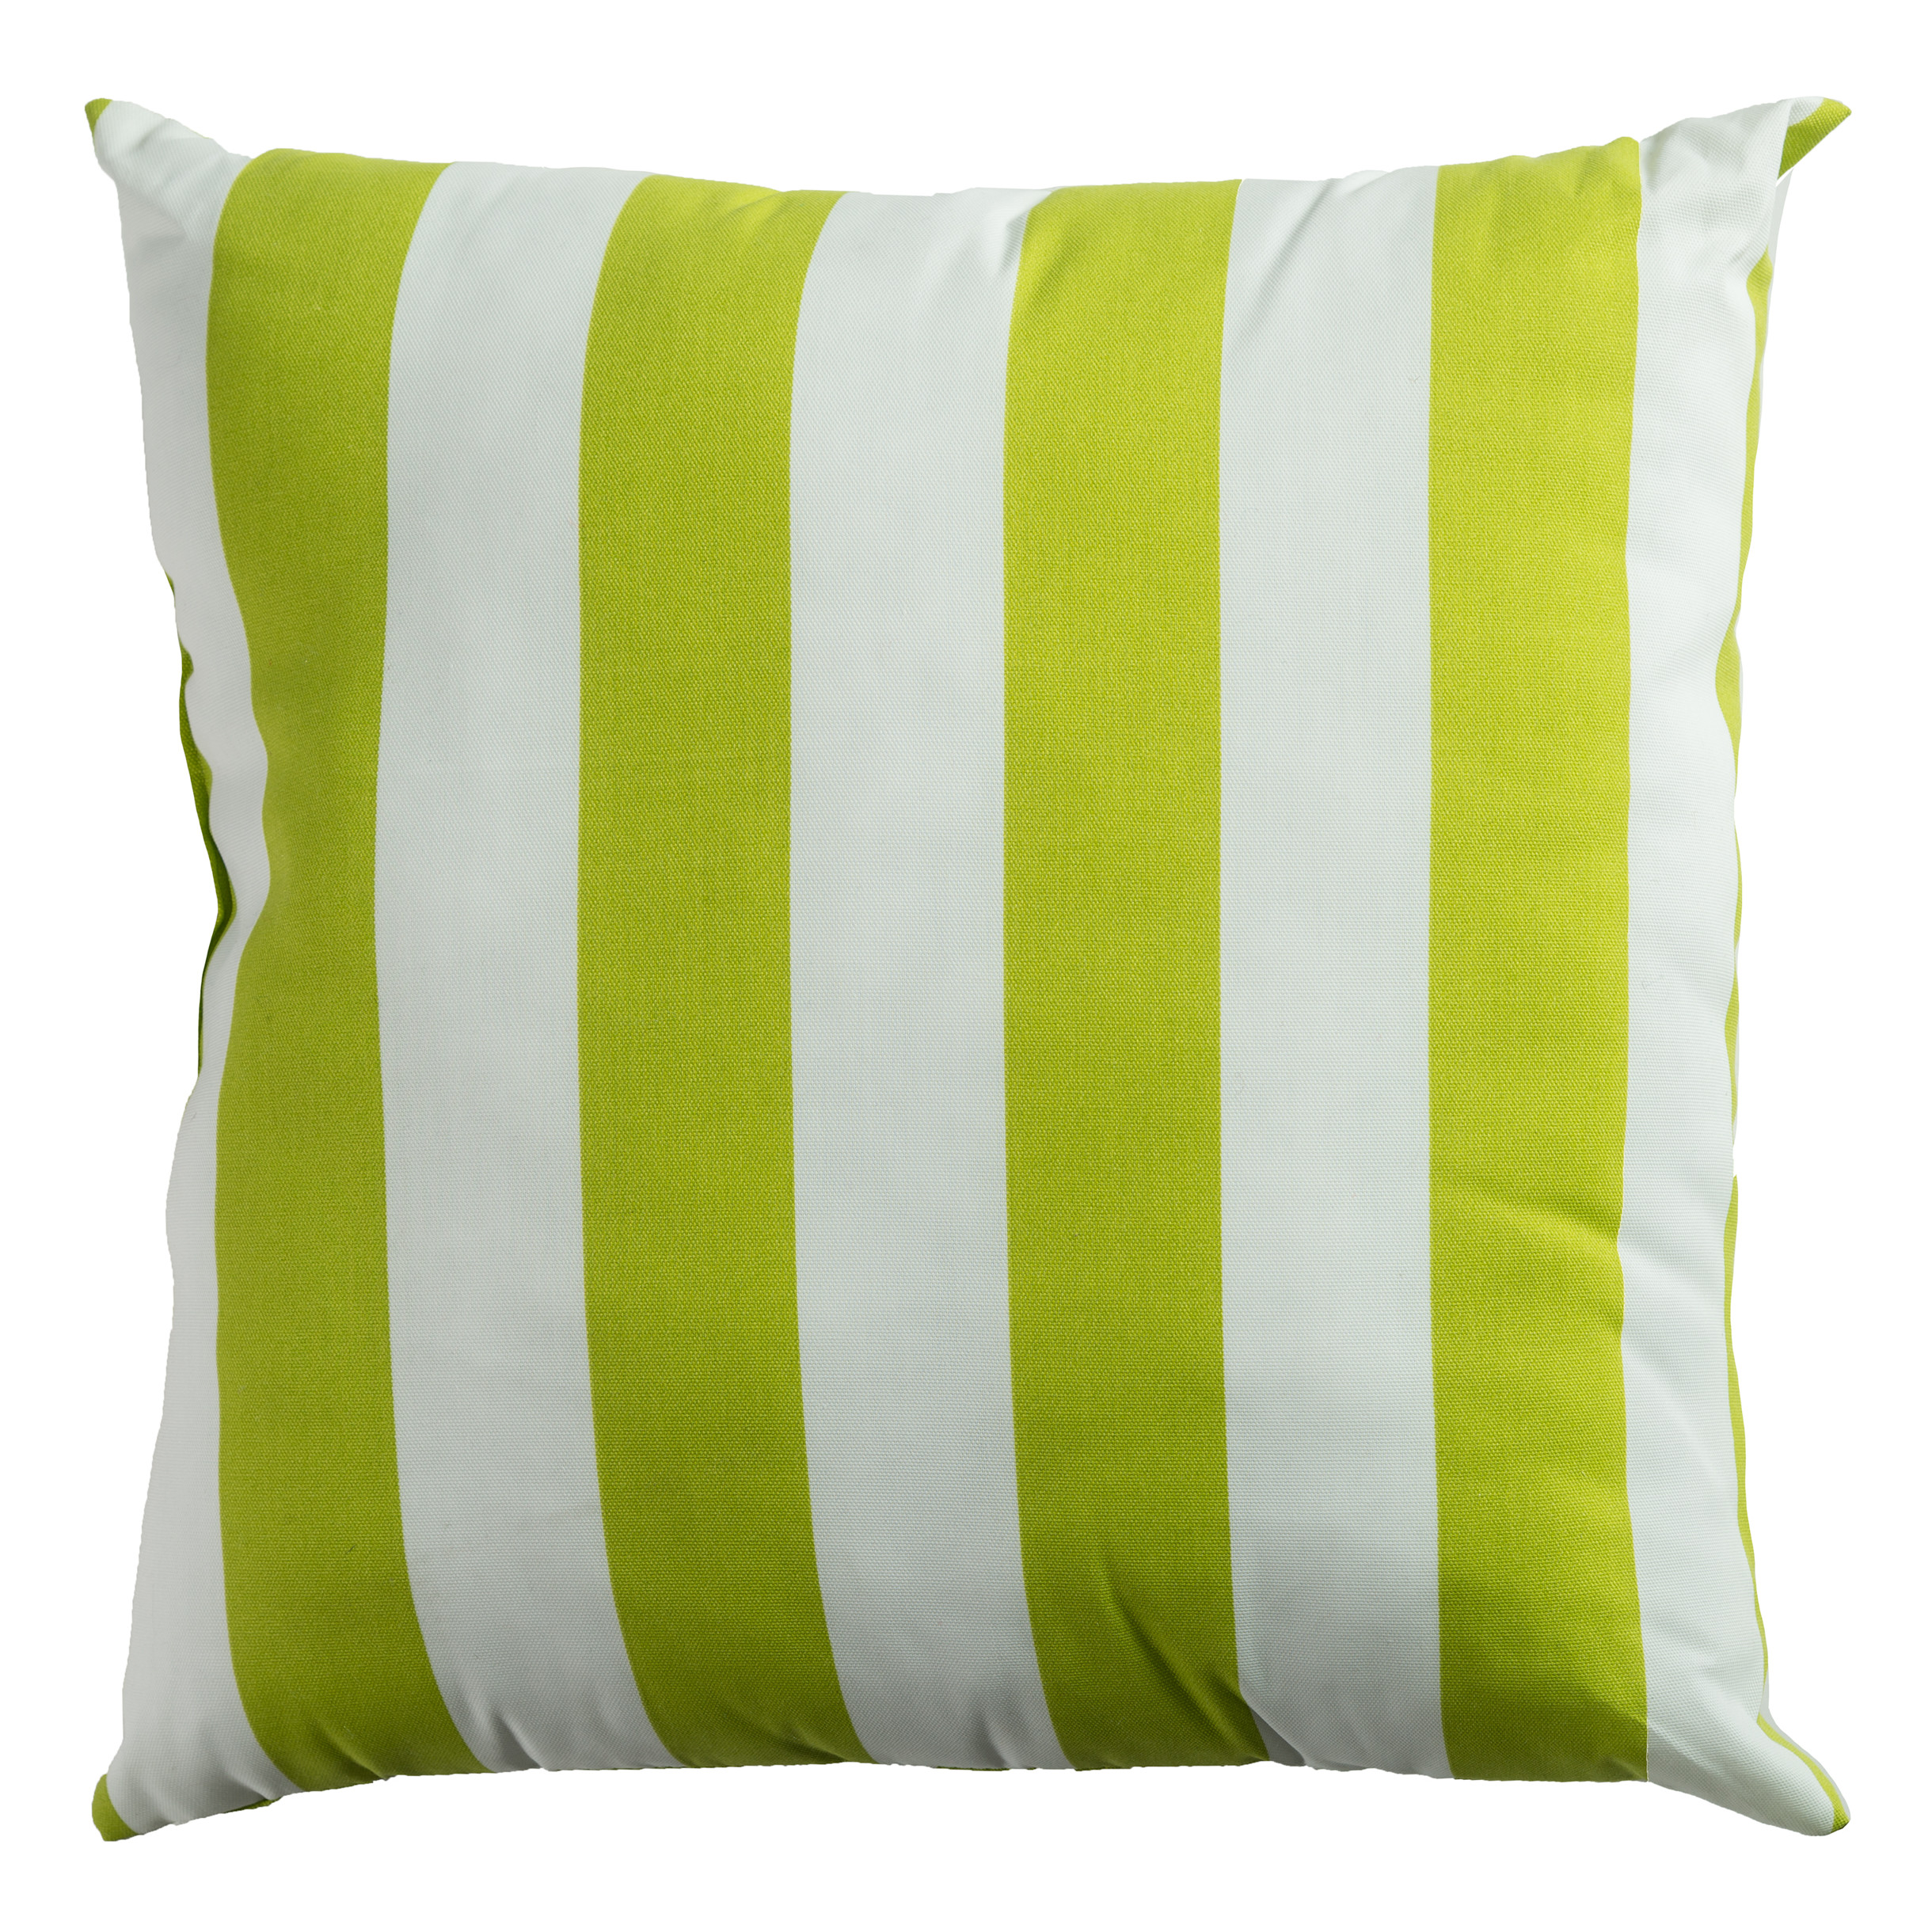 Magnificent outdoor throw pillows for outdoor design with cheap outdoor throw pillows